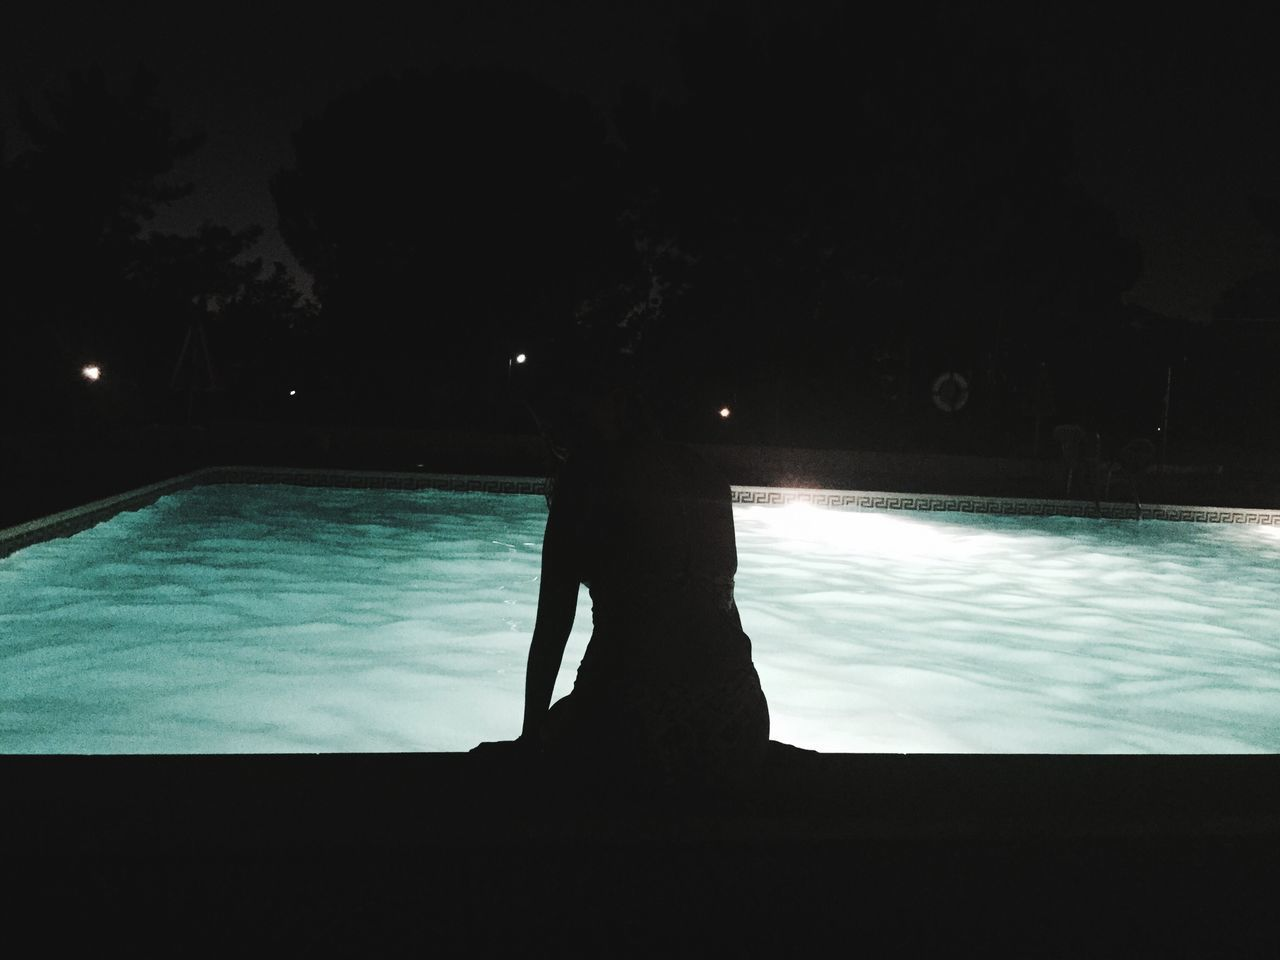 water, swimming pool, silhouette, one person, real people, standing, night, outdoors, sky, nature, tree, close-up, people